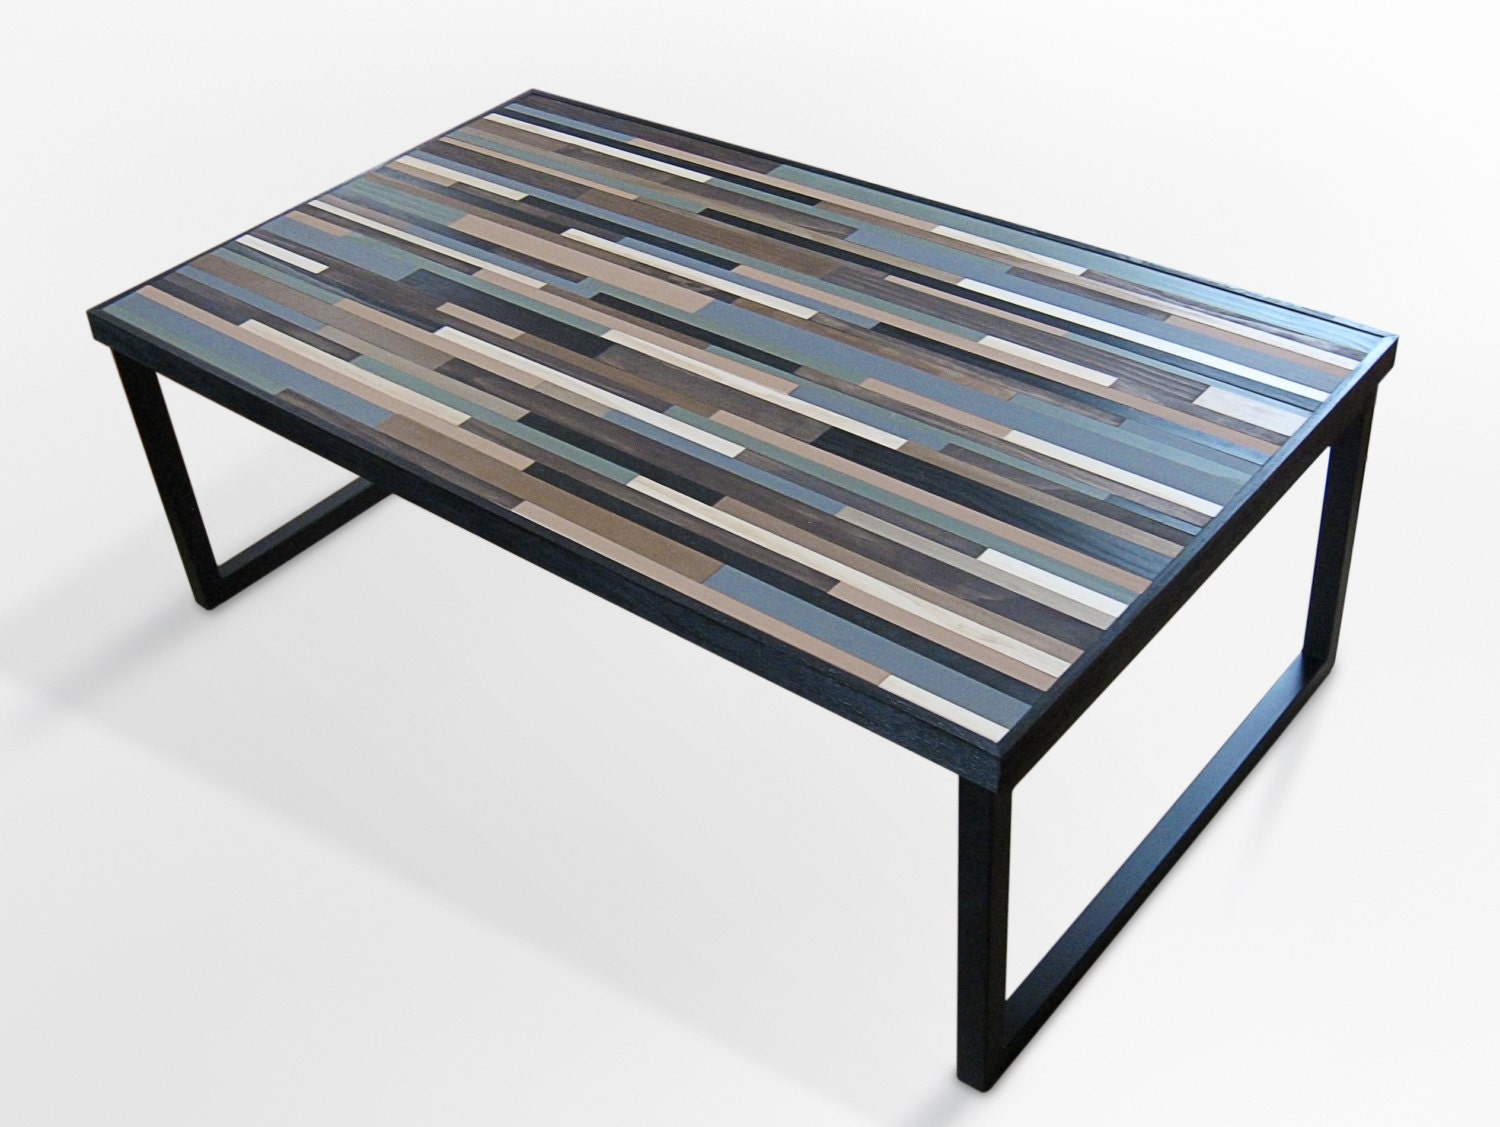 Reclaimed Wood Table Modern Industrial Wood Coffee Table with